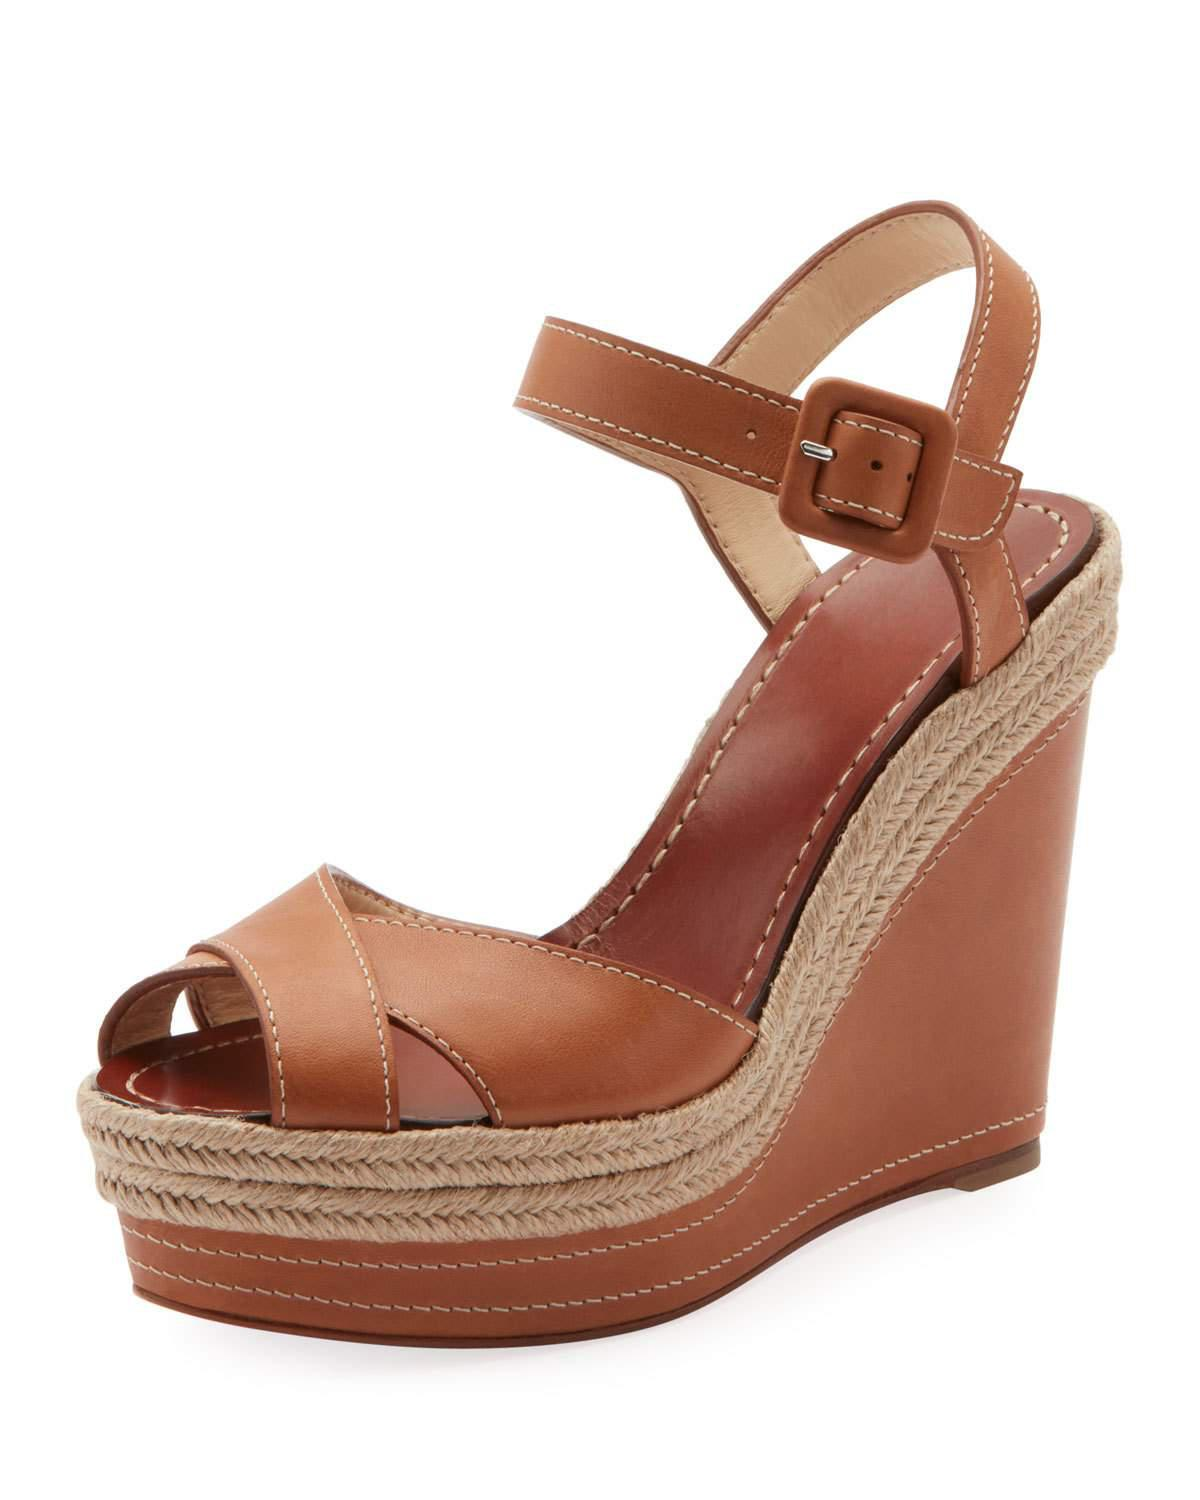 3c89a2c511ae Christian Louboutin Almeria 120 Espadrille Platform Wedge Sandals In  Version Light Gold